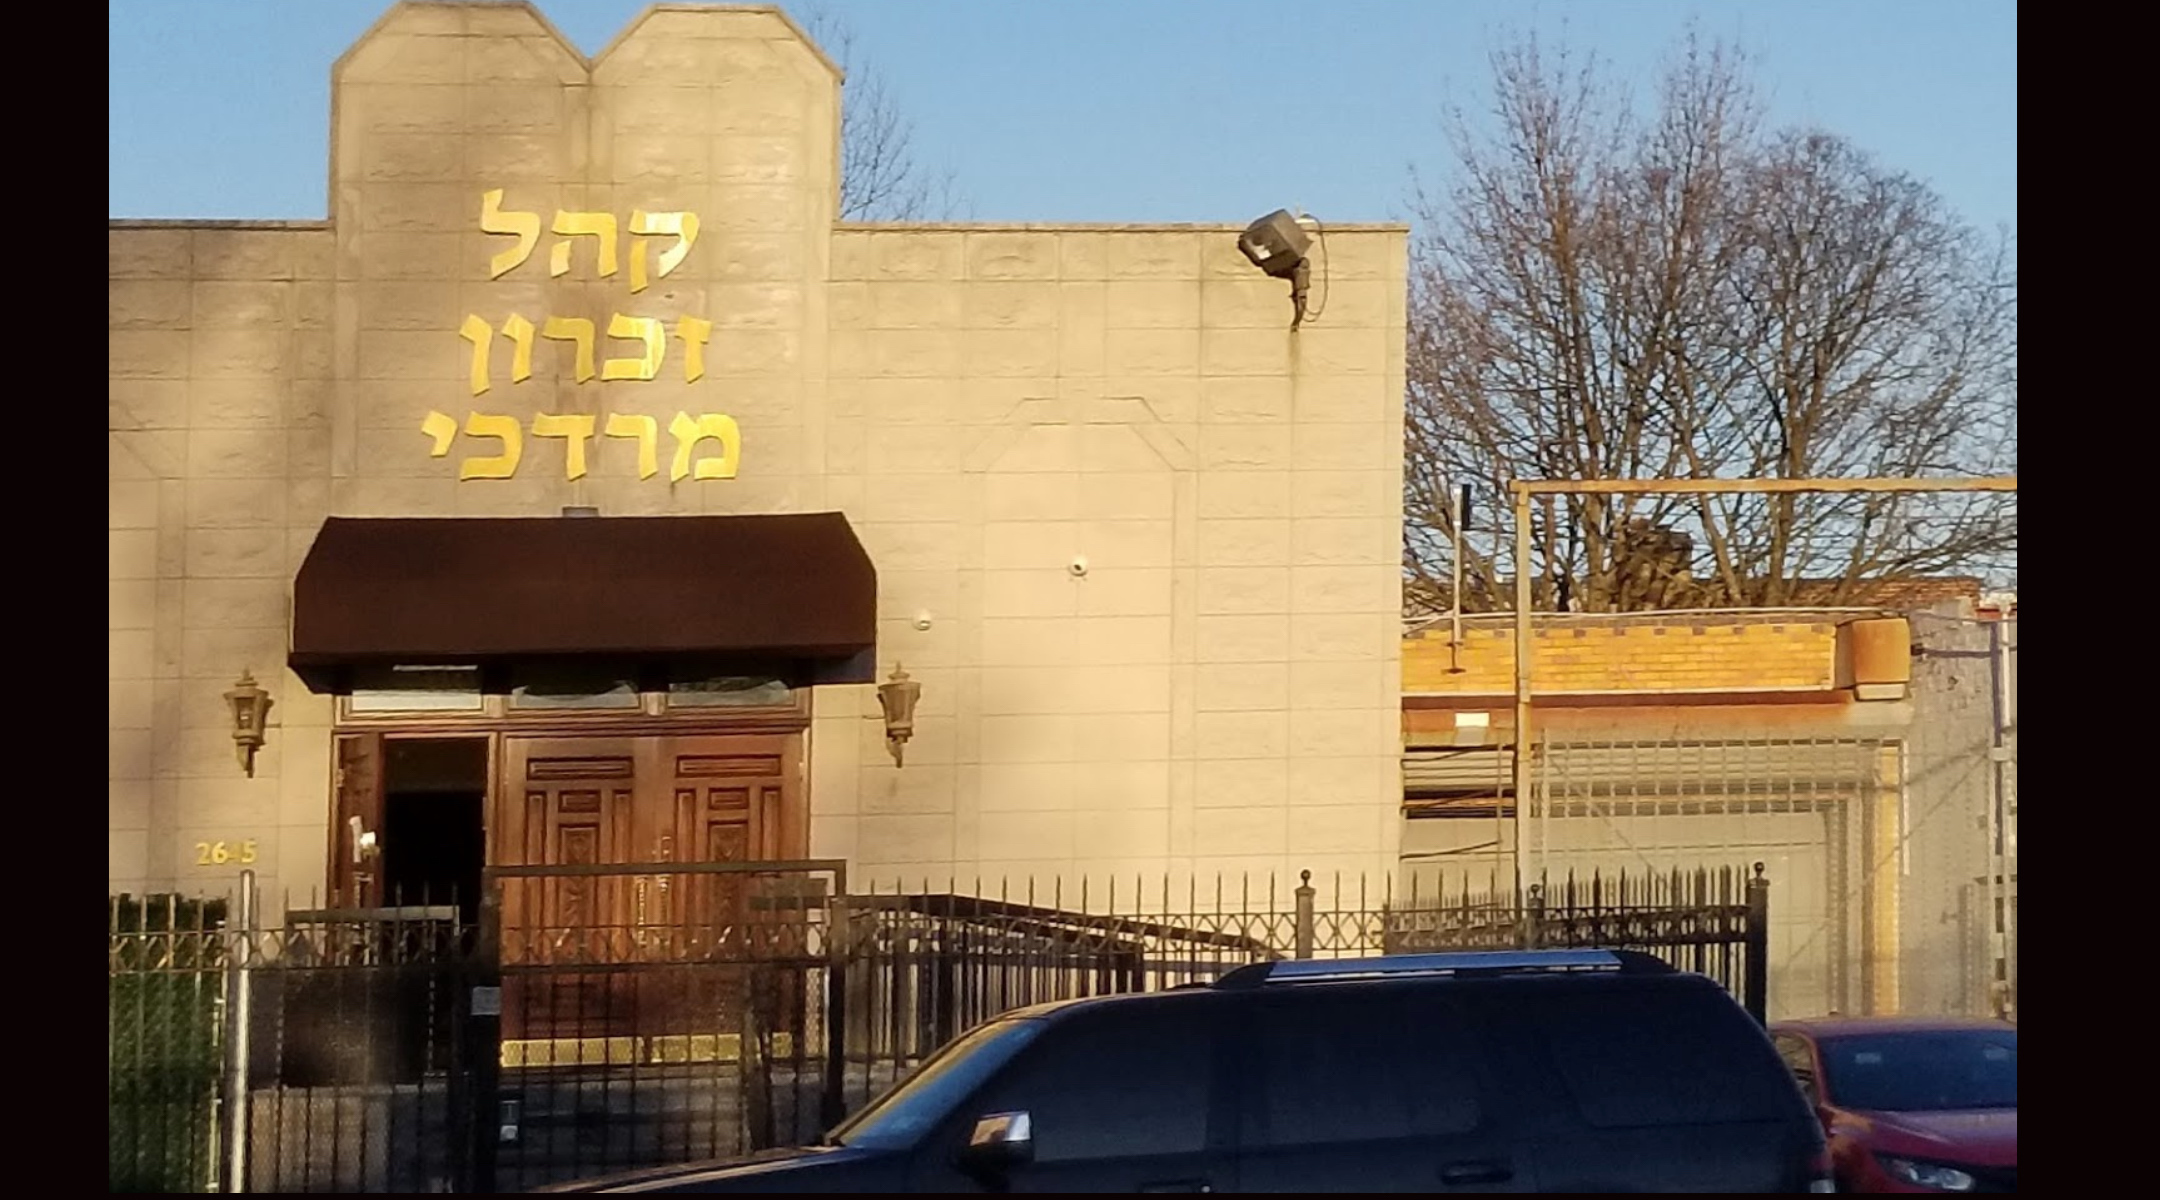 A bullet was fired into a Brooklyn synagogue. The NYPD is investigating.